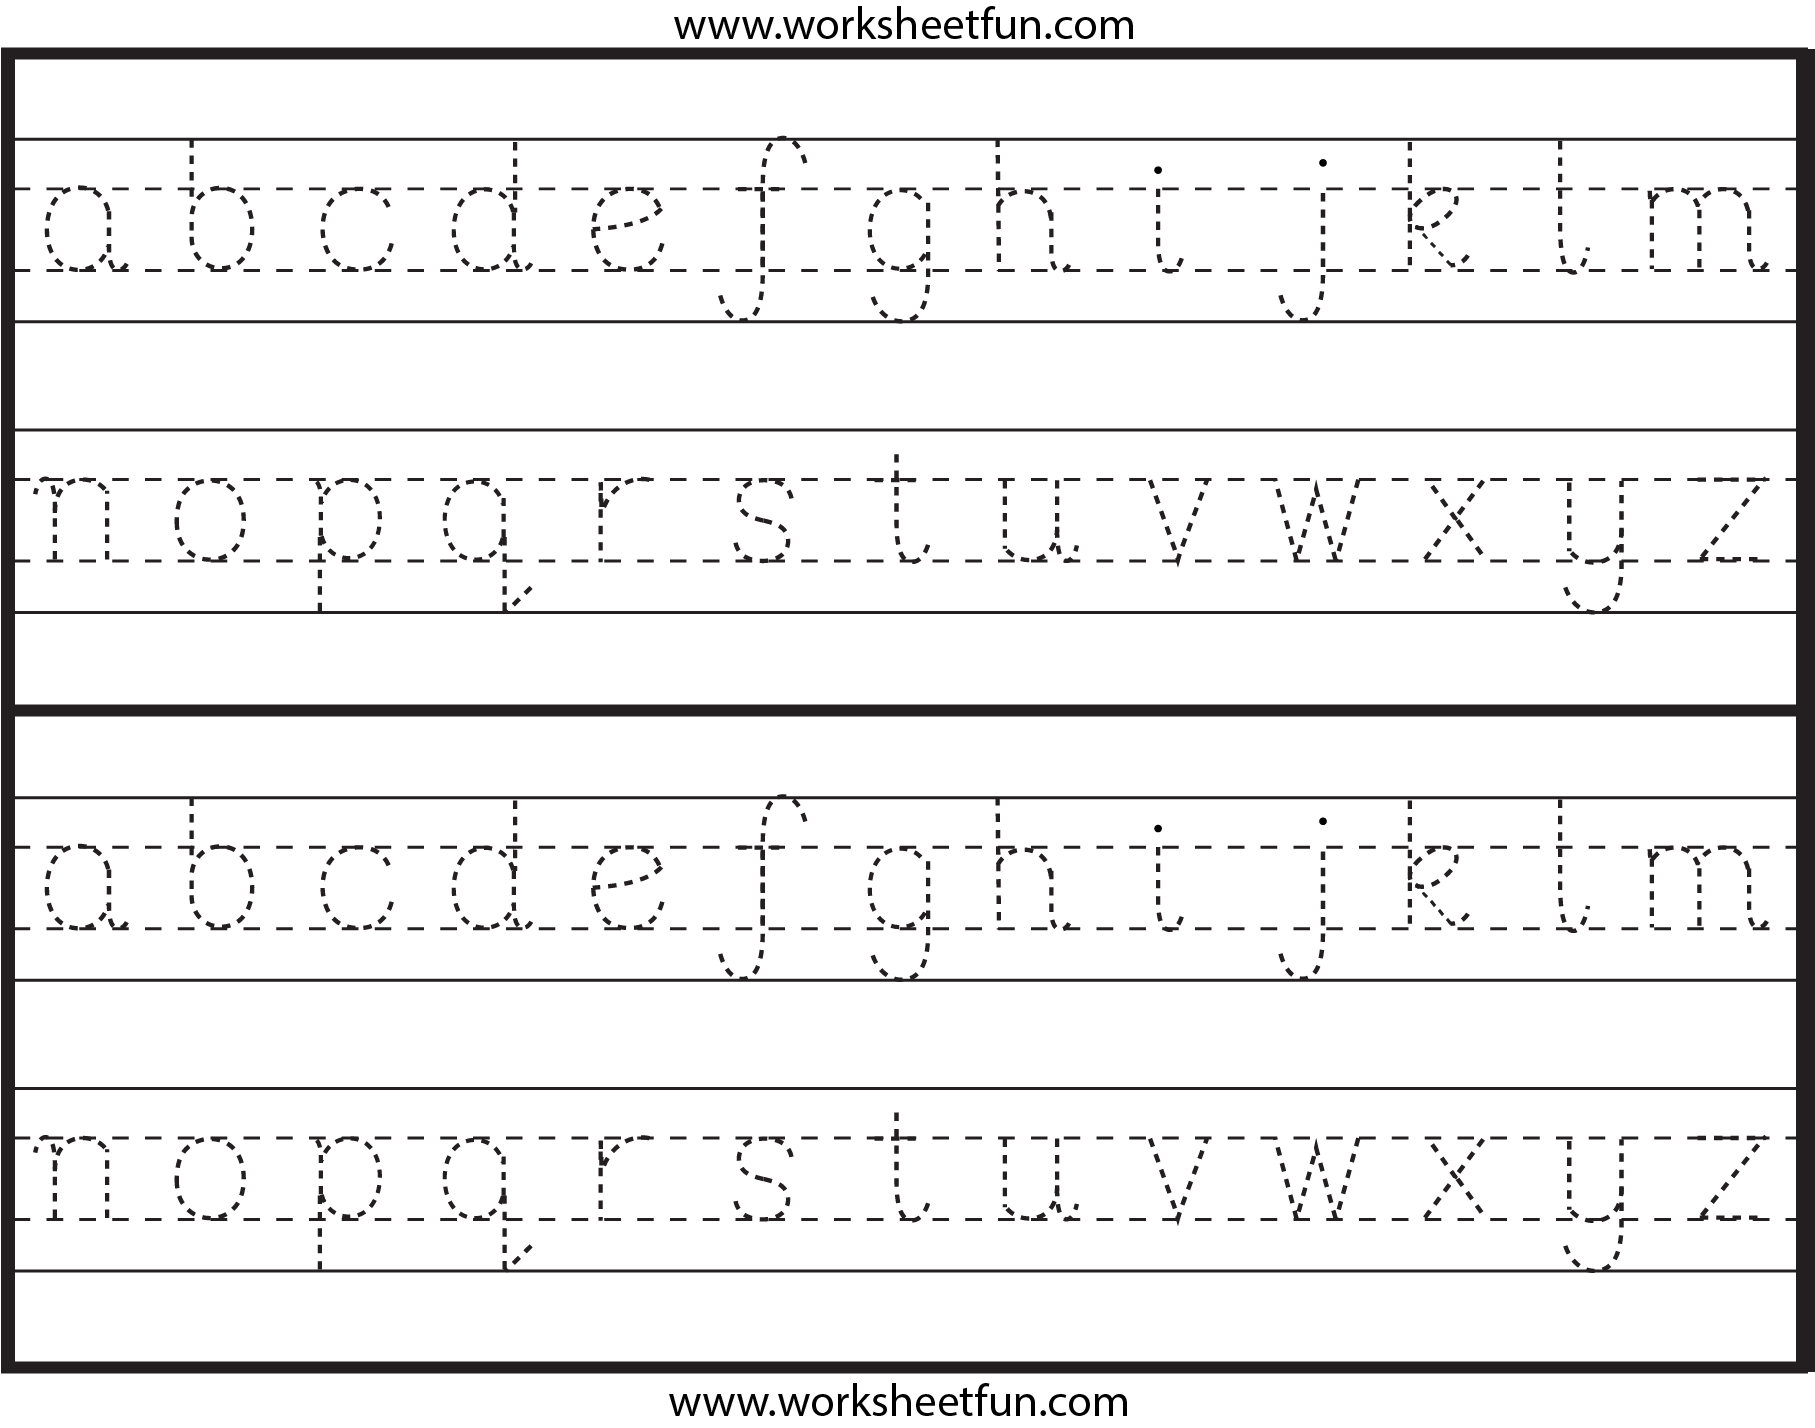 Printables Preschool Alphabet Worksheets A-z printables preschool alphabet worksheets a z safarmediapps free printable letters intrepidpath 8 best images of letter